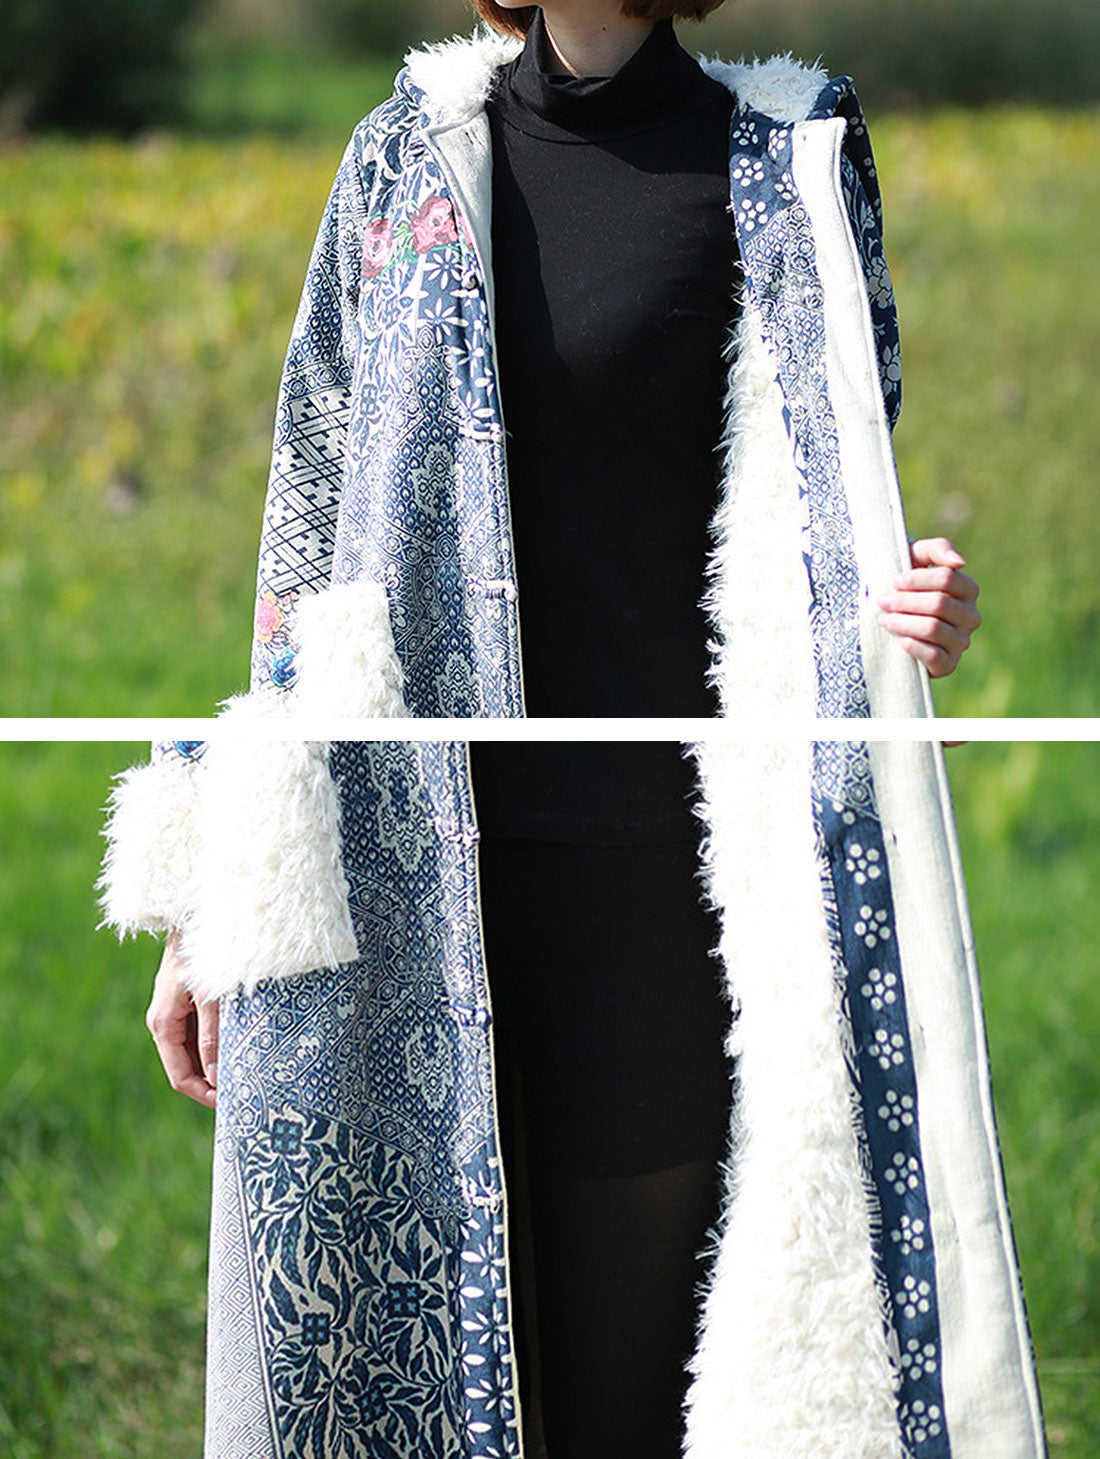 Thickened Coat with Fluffy Pocket Details